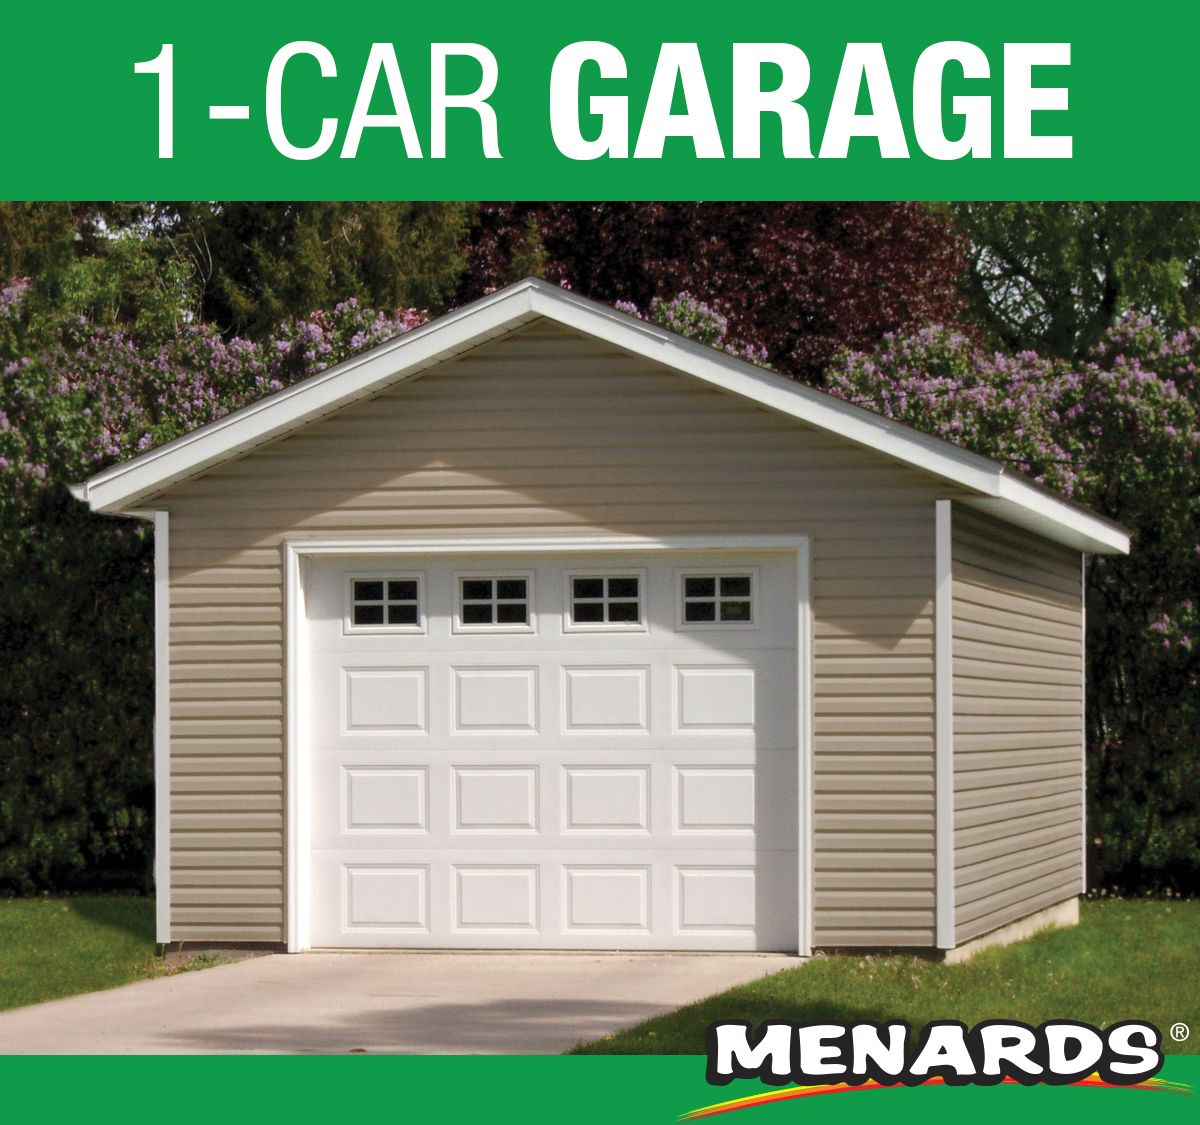 The 12 X 20 X 8 One Car Mini Low Maintenance Garage Features One 9 X 7 Overhead Garage Door And A Prehung Garage Door Makeover Overhead Garage Door Garage